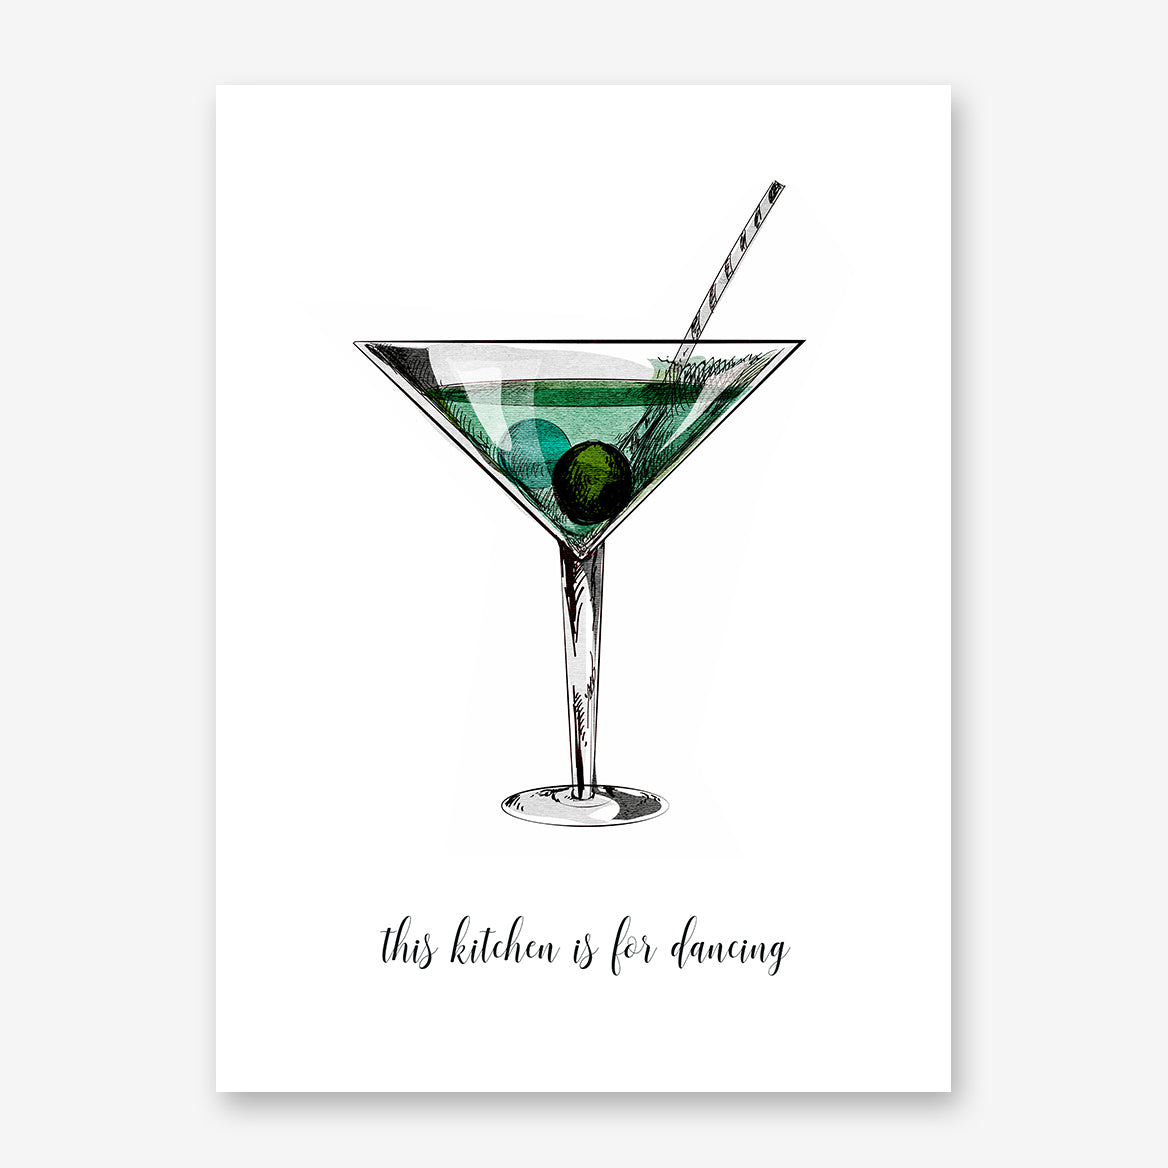 Kitchen poster print by Kubistika, with a green drink glass and quote 'this kitchen is for dancing', on white background.